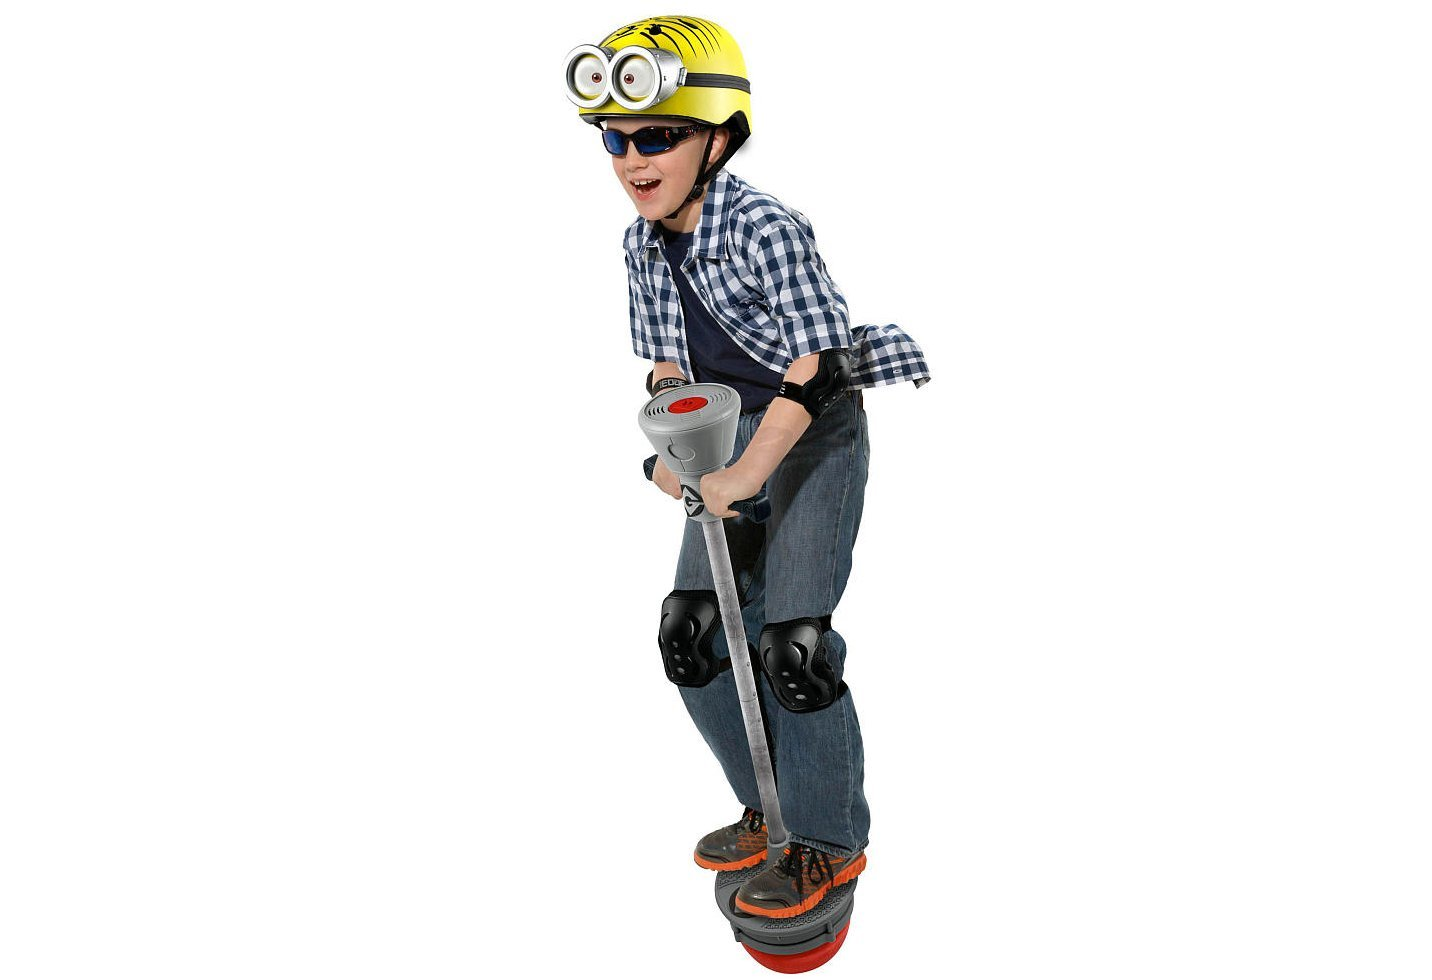 Minions Deluxe Electronic Pogo Stick with Interactive Sounds by Edge Brands Lmited